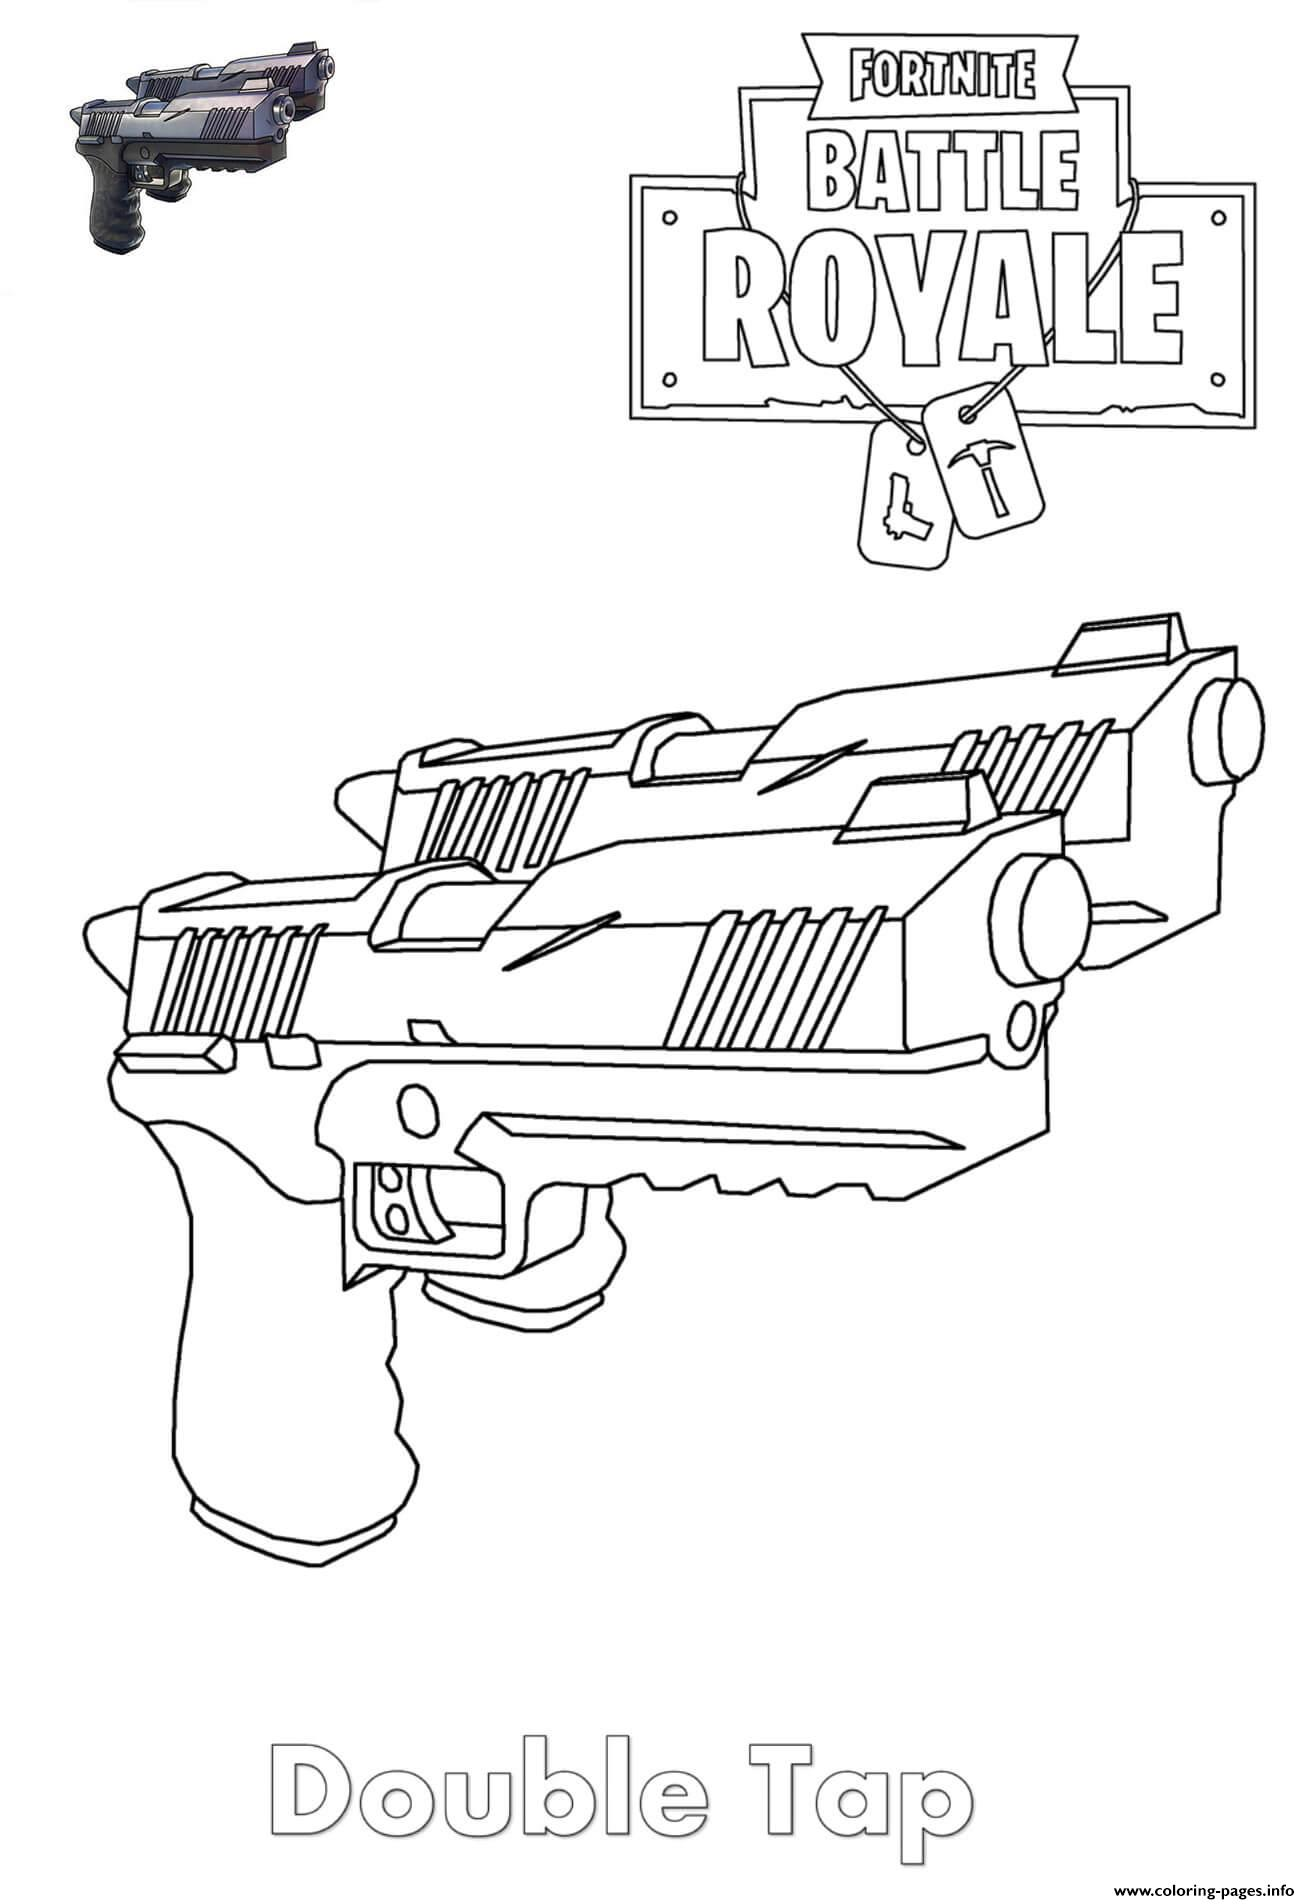 Double Tap Fortnite Coloring Pages